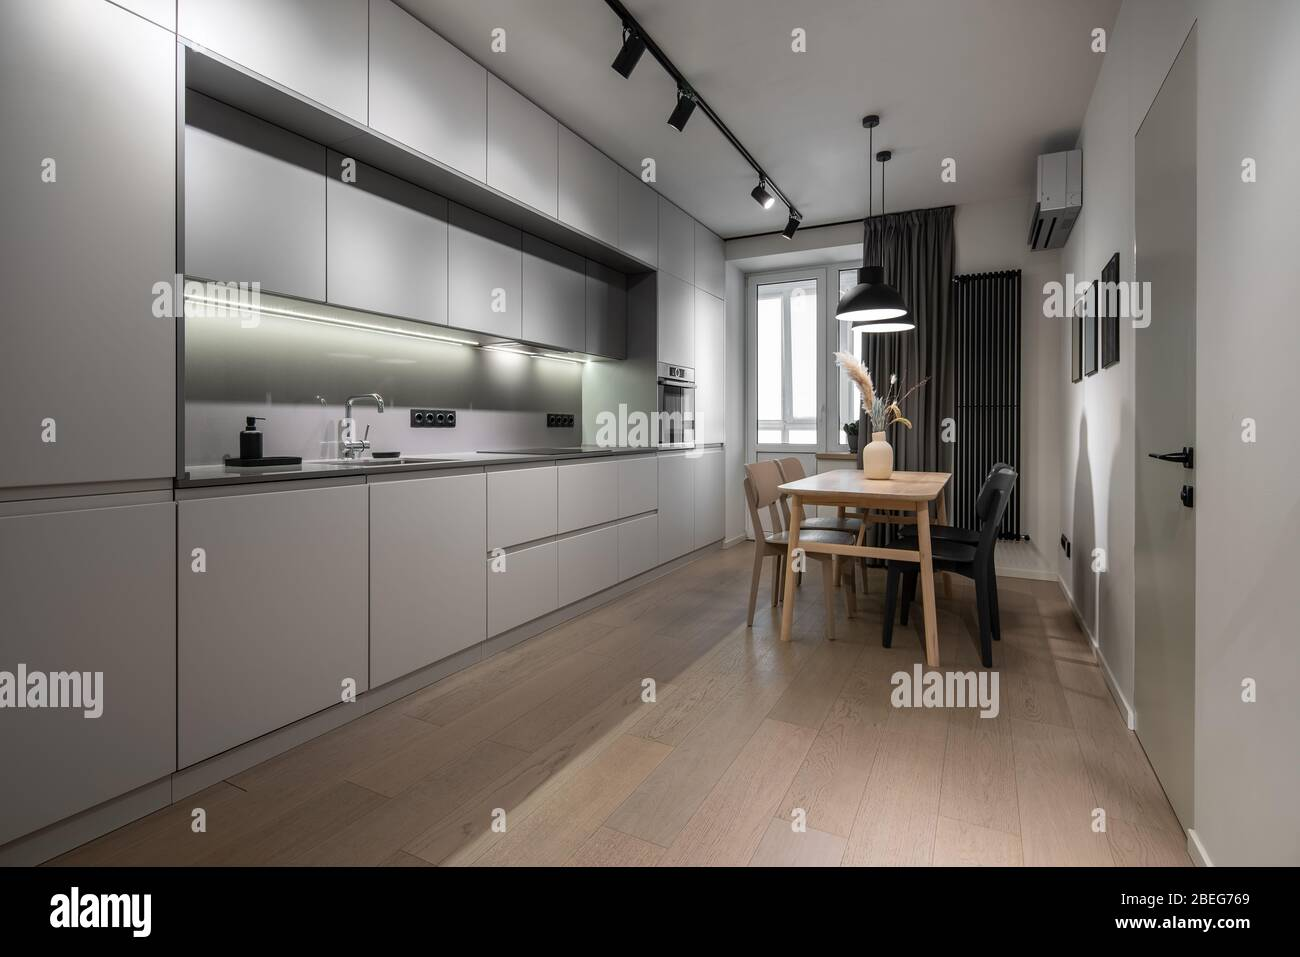 Interior Of Illuminated Modern Kitchen With White Walls Stock Photo Alamy